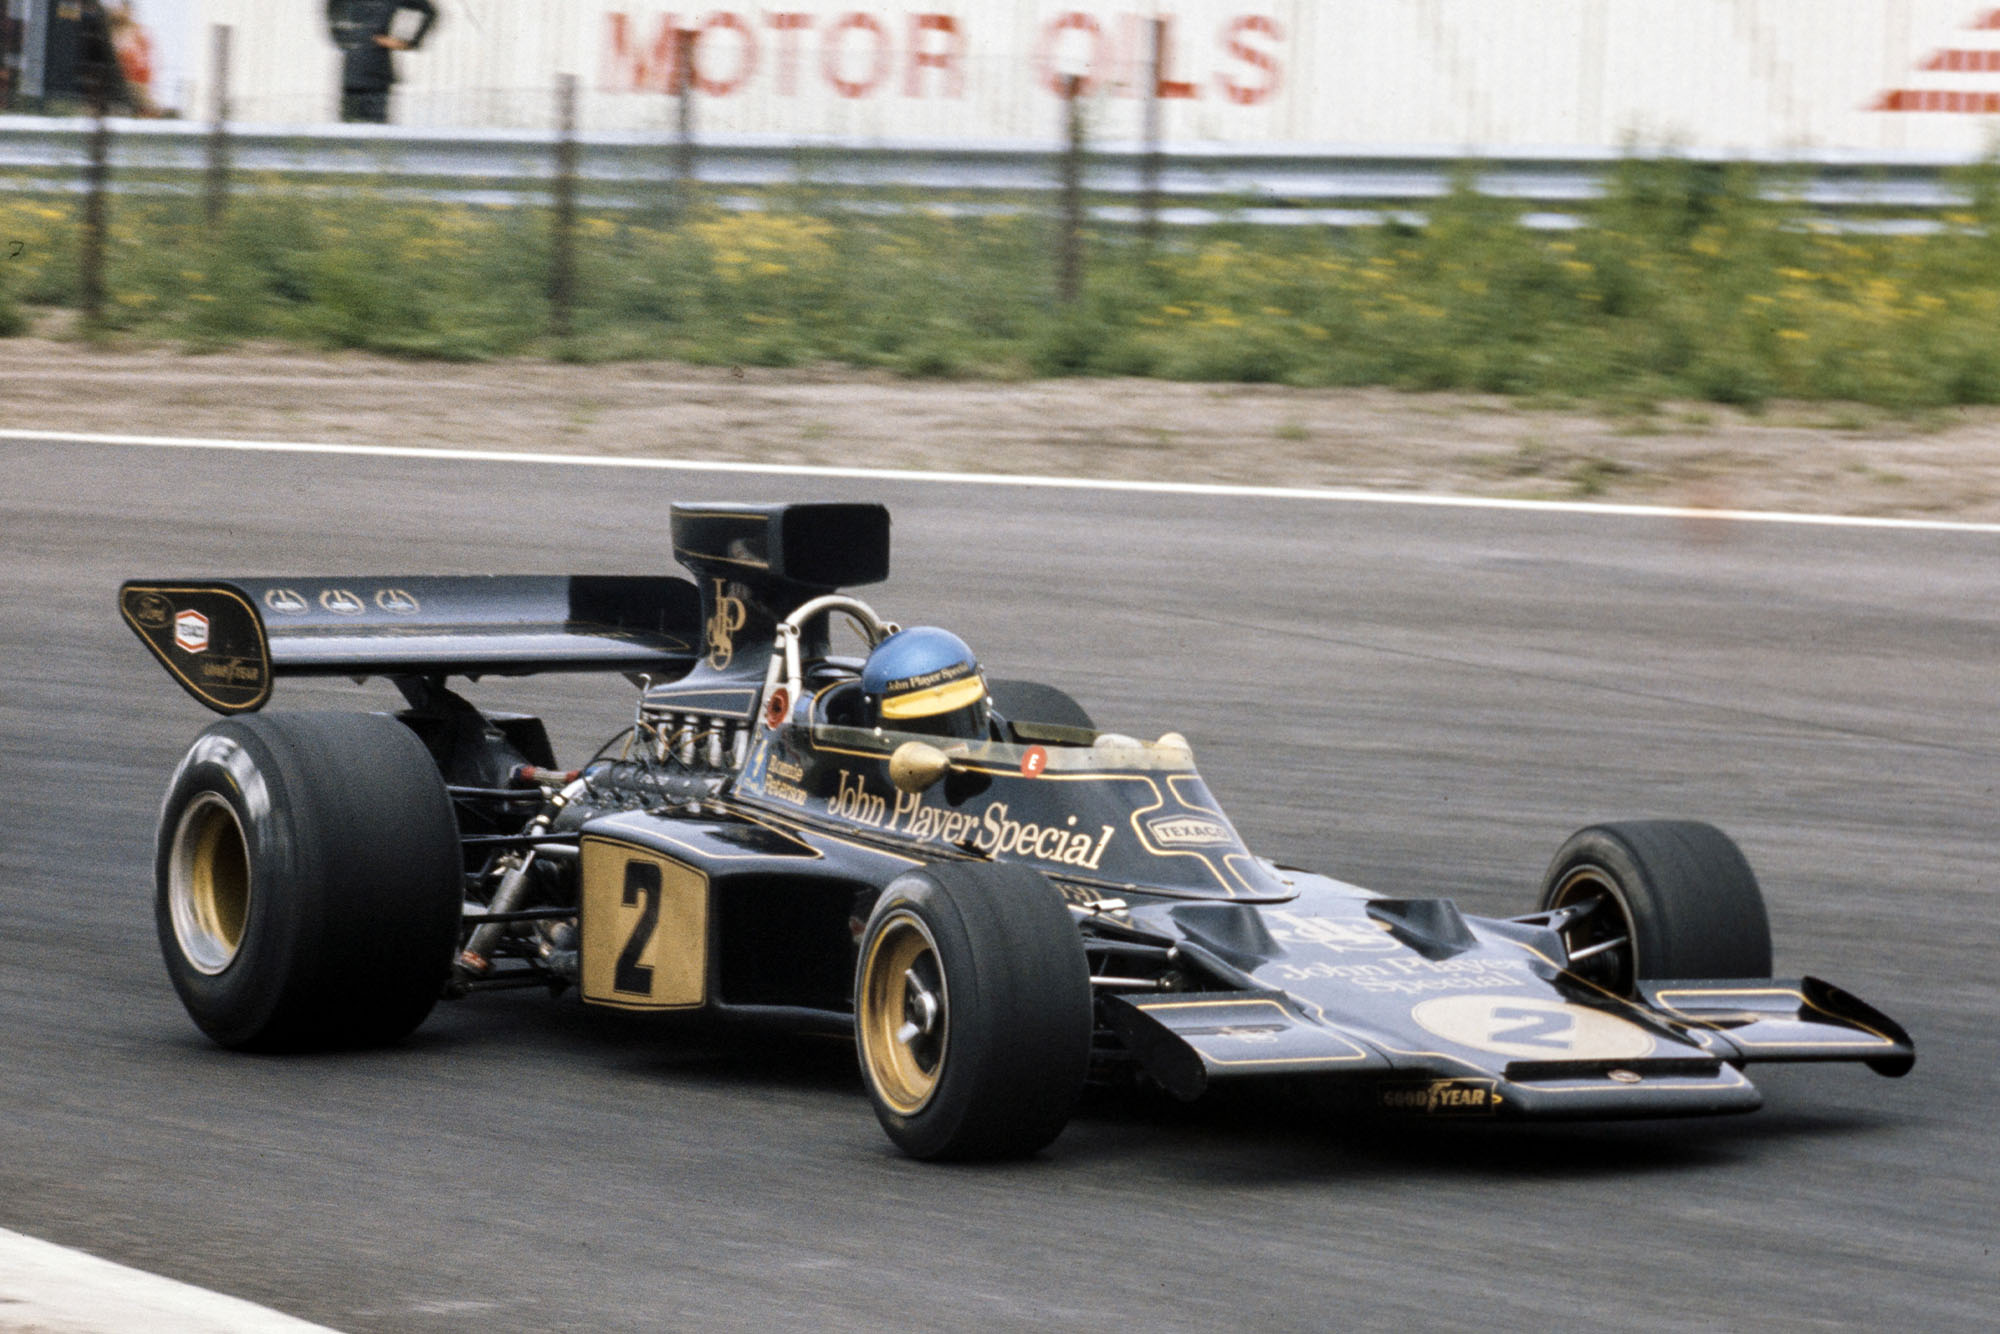 Ronnie Peterson racing for Lotus at the 1973 Dutch Grand Prix, Zandvoort.